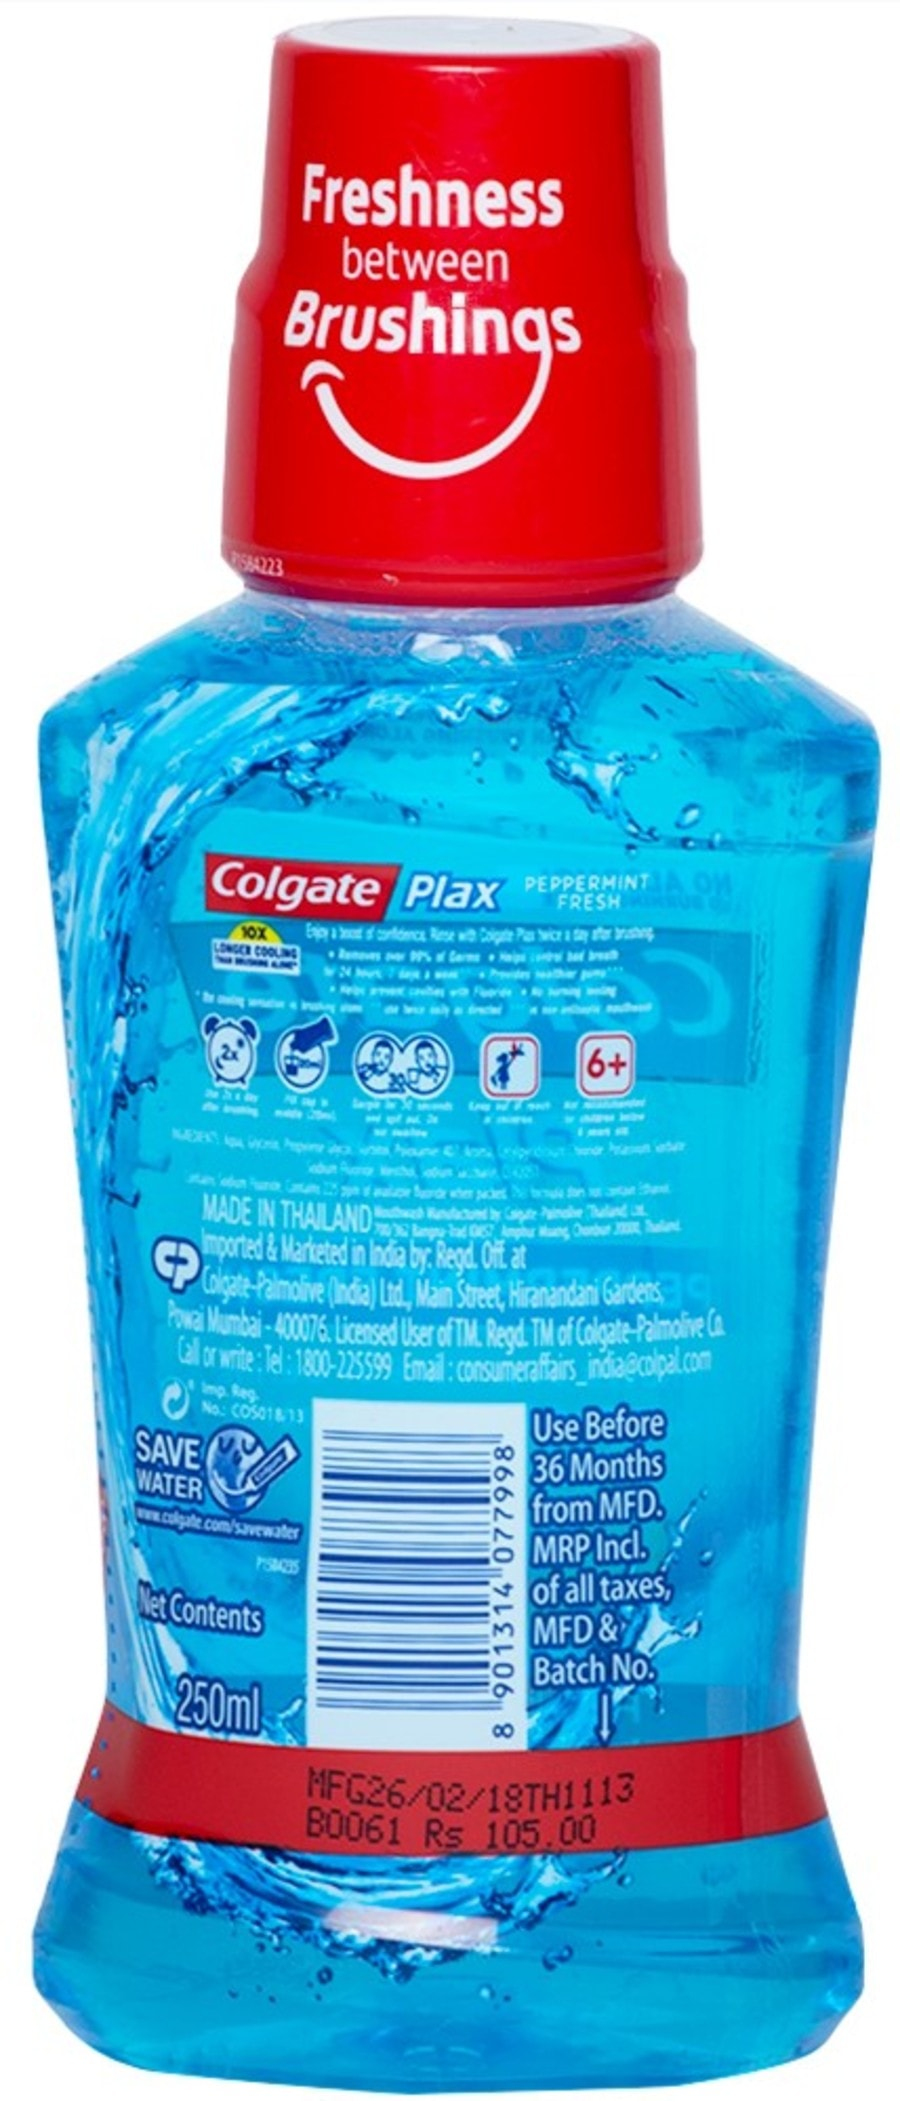 Colgate Plax Pepper Mint Alcohol-free Mouthwash - 250 Ml